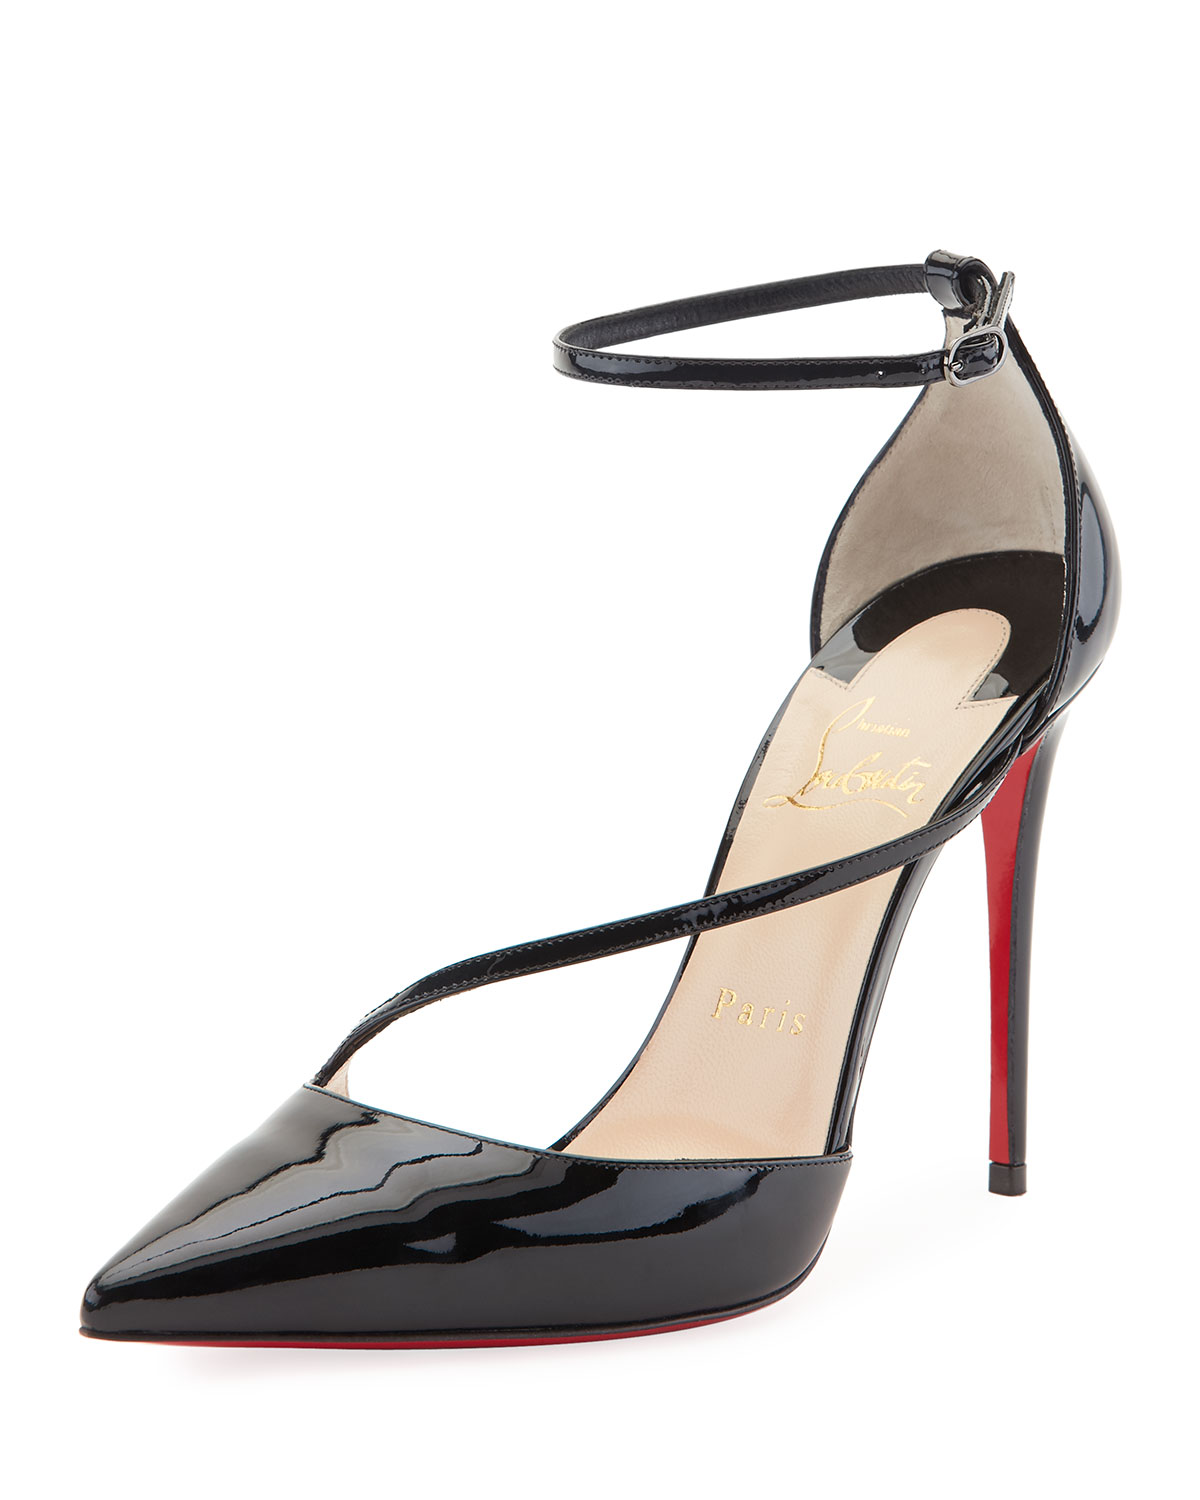 52afb822b666 Christian Louboutin Fliketta Patent 100mm Red Sole Ankle-Wrap Pump ...